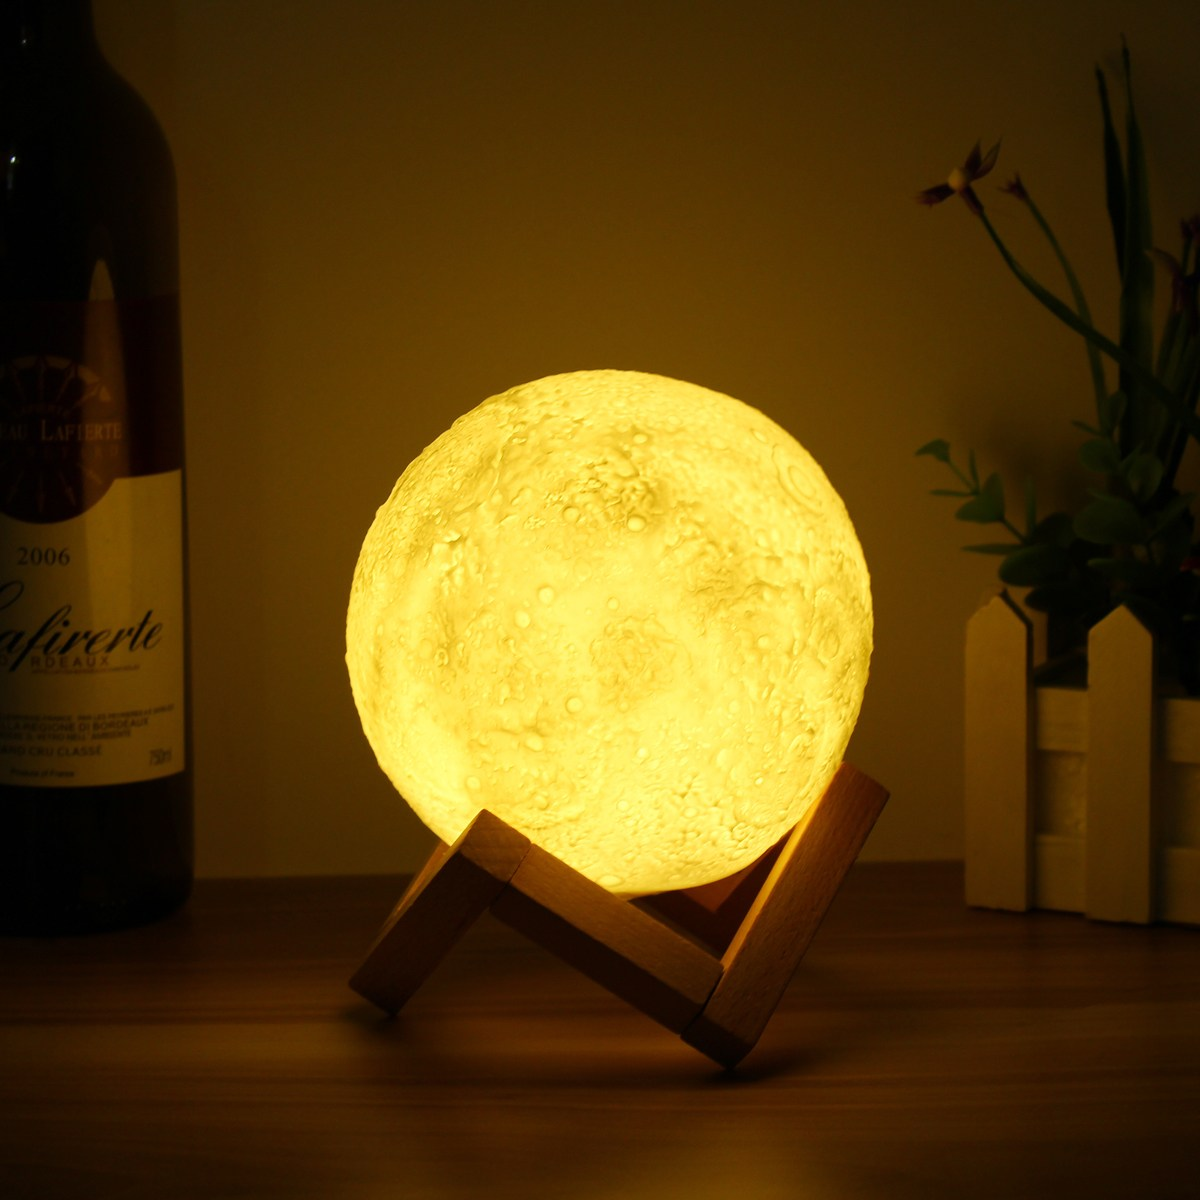 13cm Novelty 3D Full Moon Lamp LED Night Light Color Changing Desk Table Light Home Decor USB Rechargeable diy cinematic lightbox led night light box modern table desk lamp a4 size letters number battery usb powered home decor iy303206 page 5